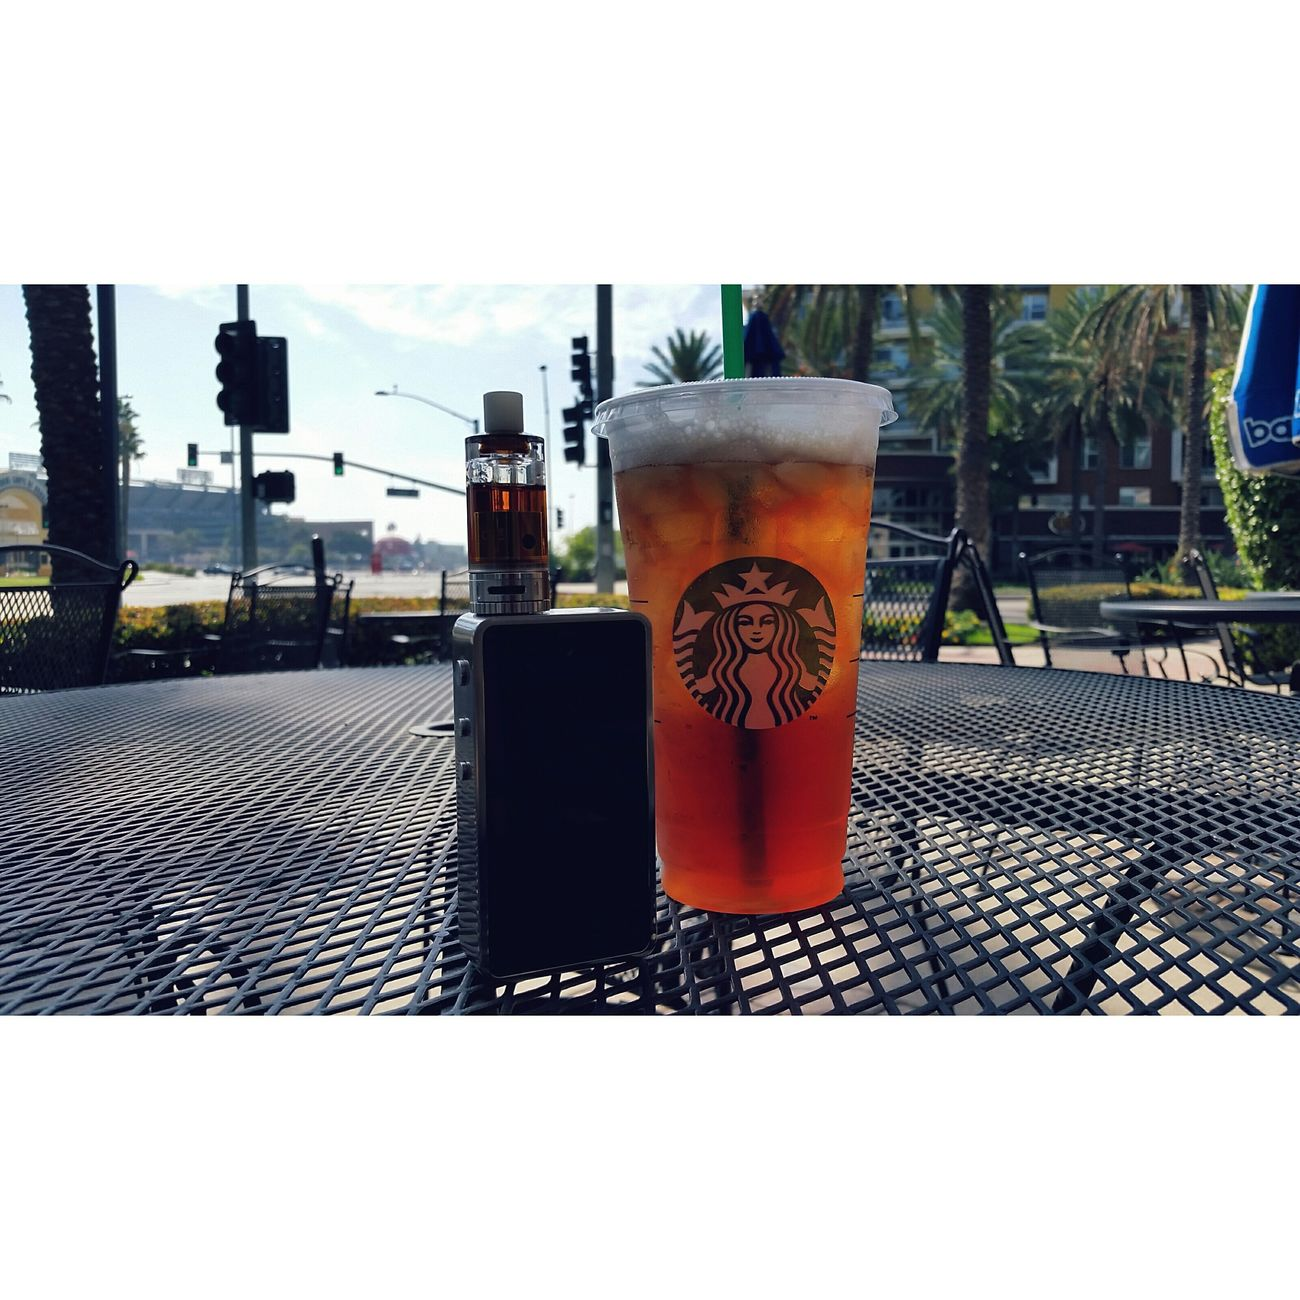 Vapebucks. Vapes Starbucks First Eyeem Photo